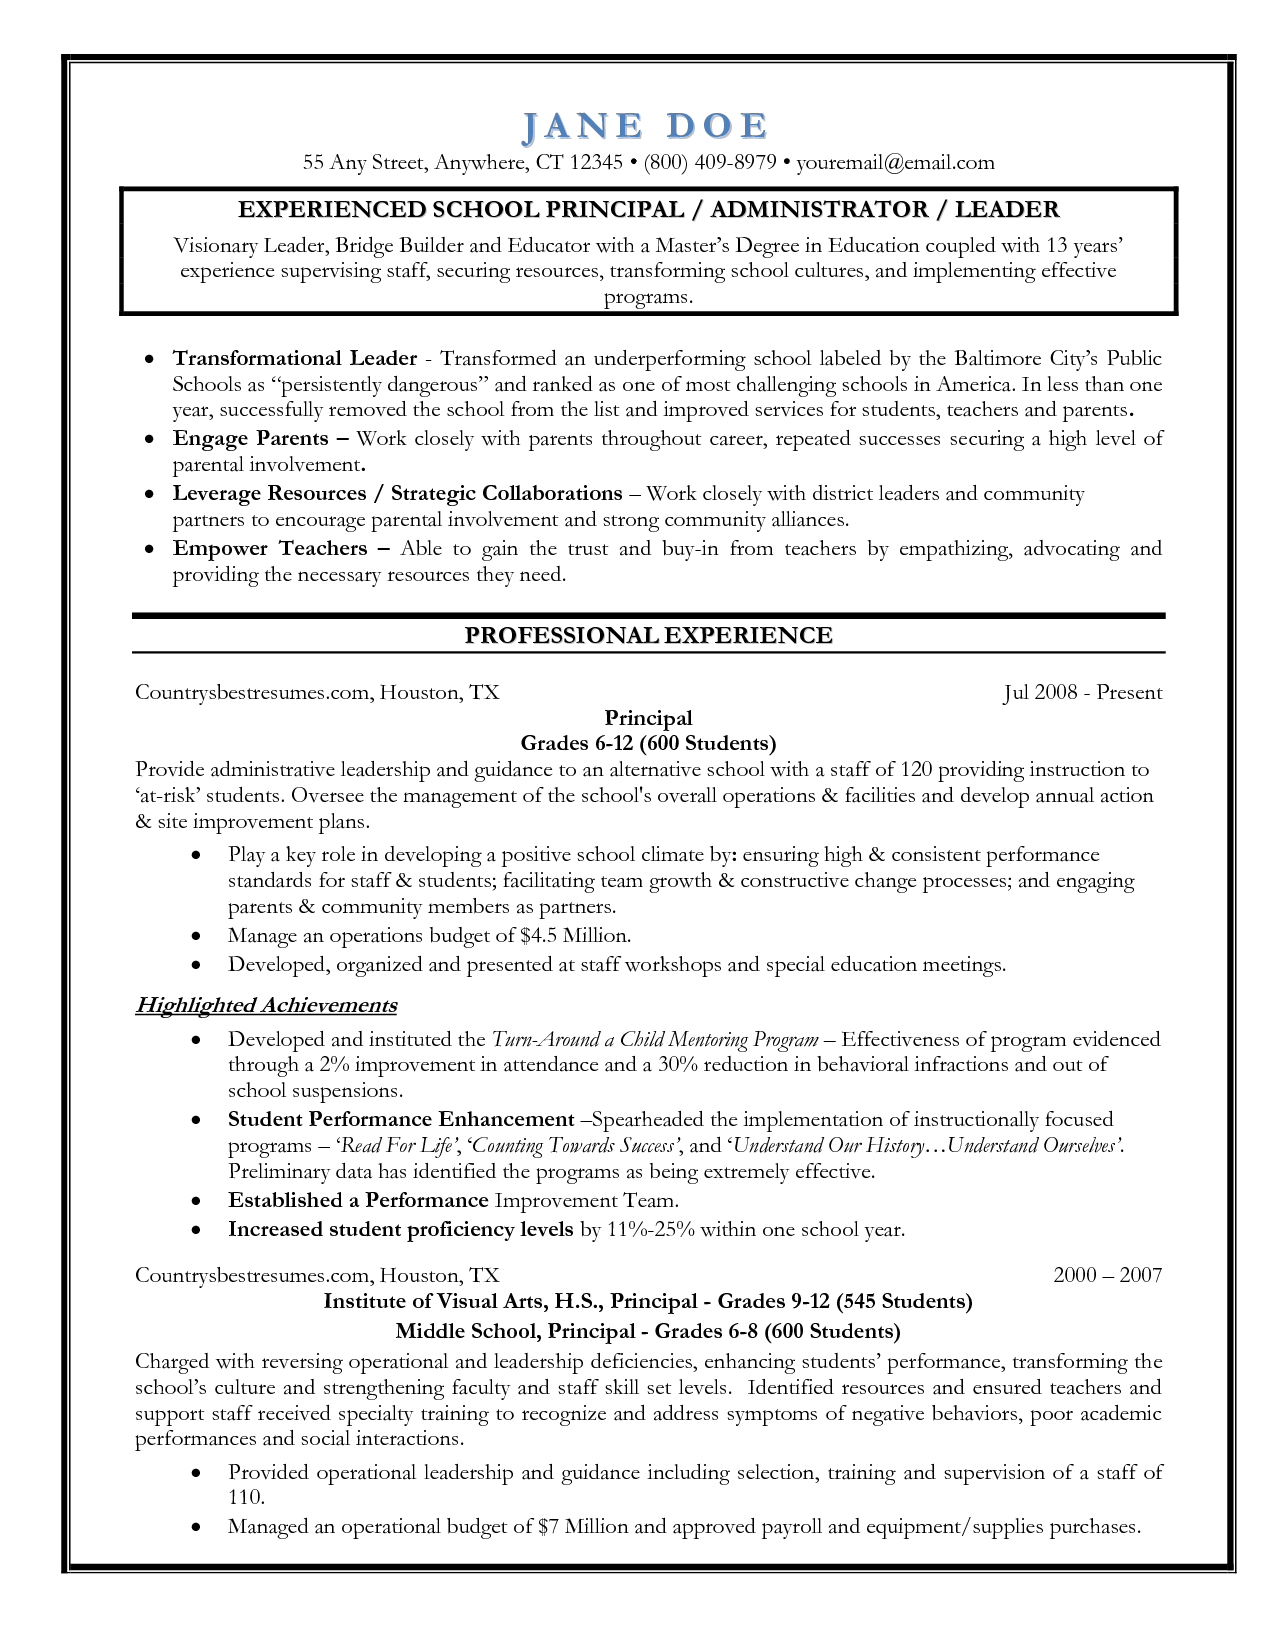 Entry Level Assistant Principal Resume Templates | Senior Educator   Principal  Resume Sample  Principal Resume